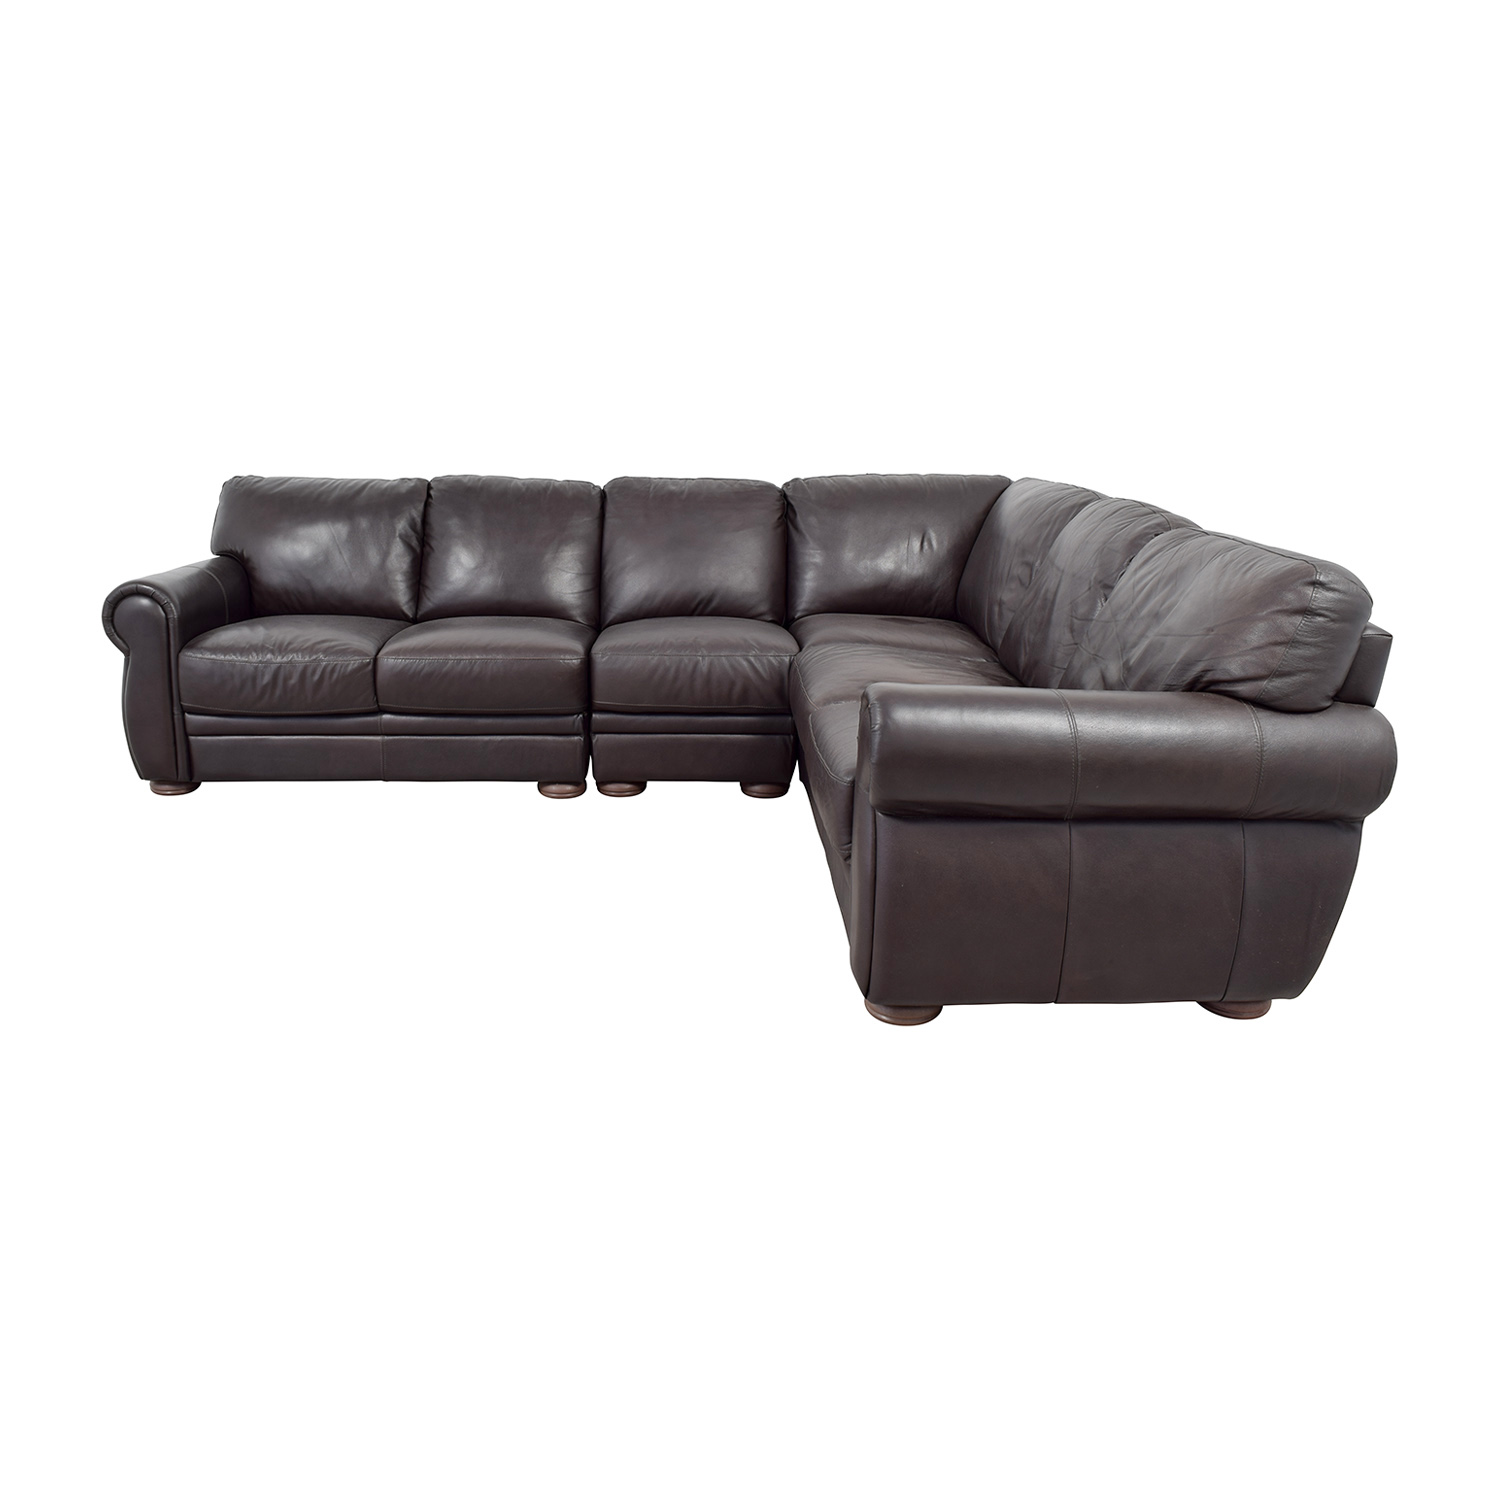 Raymour & Flanigan Raymour & Flanigan Marsala Brown Leather L-Shaped Sectional nj